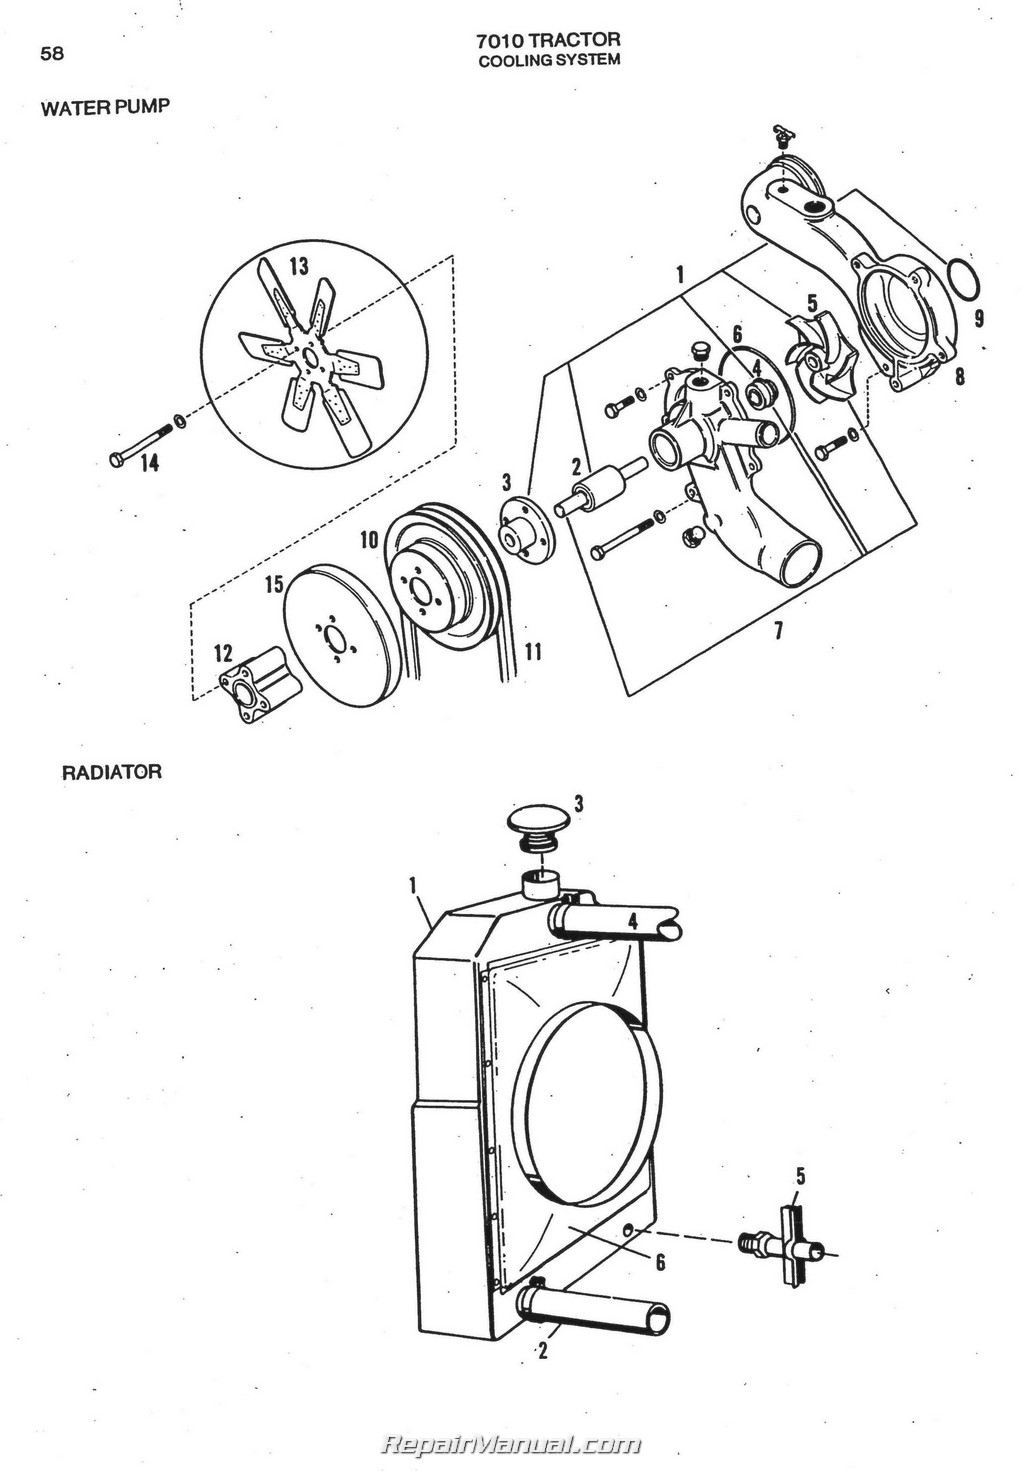 Allis Chalmerssel Parts Manual